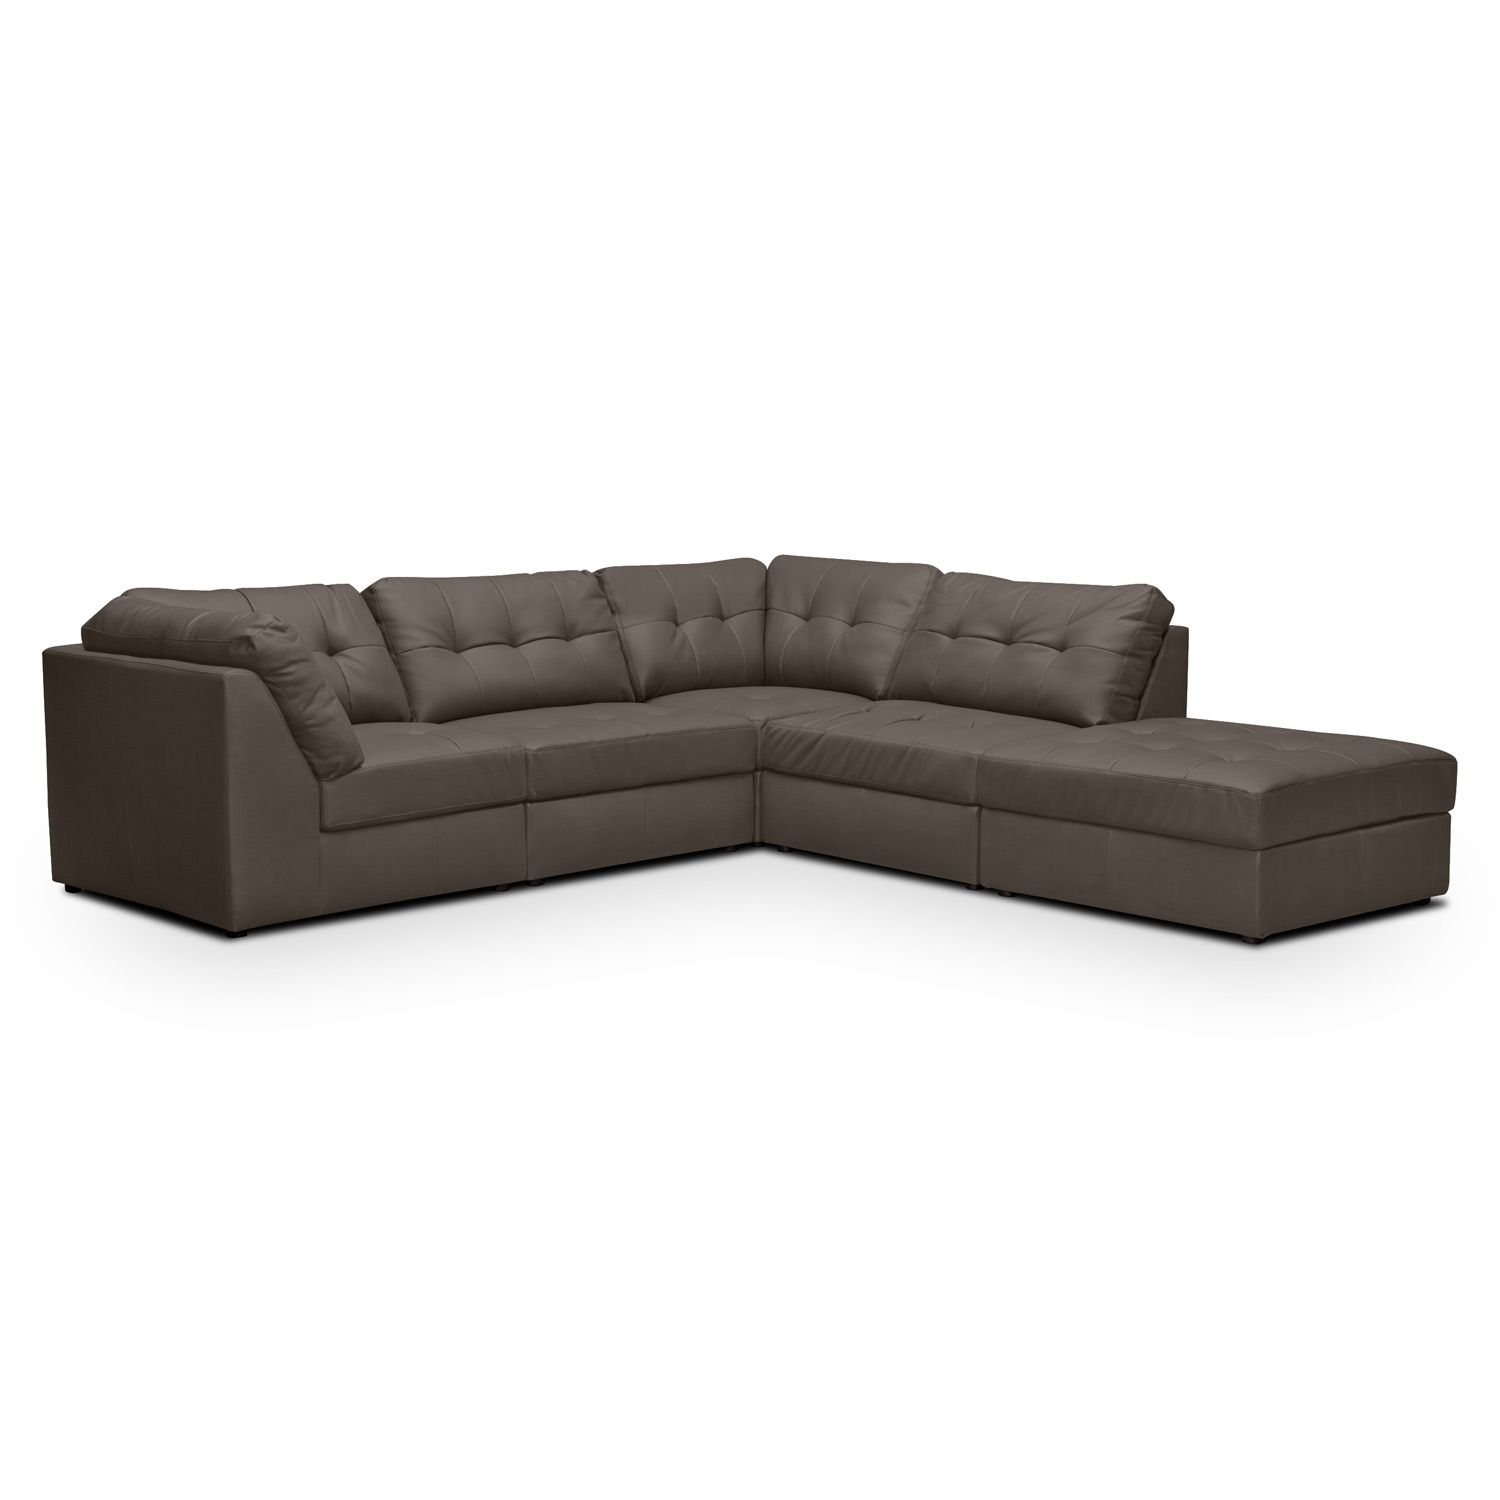 $1099.99 Aventura III Leather 5 Pc. Sectional - Value City Furniture  sc 1 st  Pinterest : value city furniture leather sectional - Sectionals, Sofas & Couches